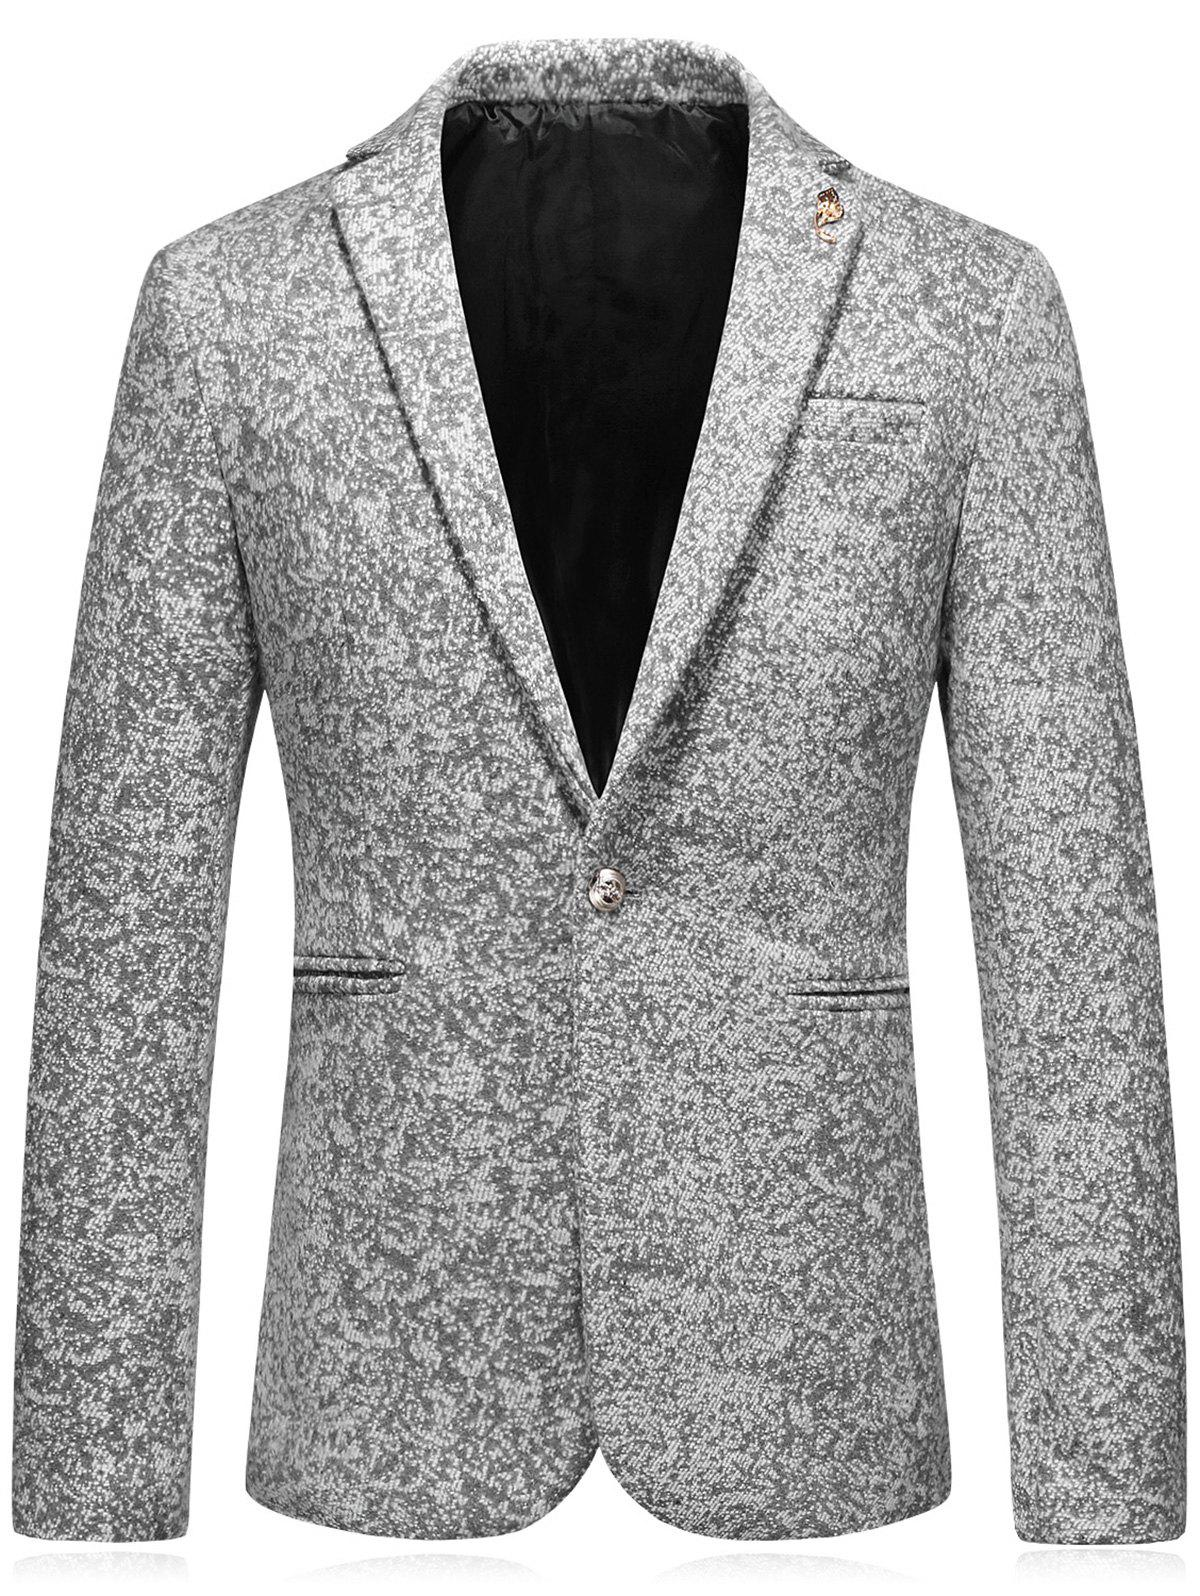 Edging Leaf Embellished Woolen Blazer - GRAY 3XL